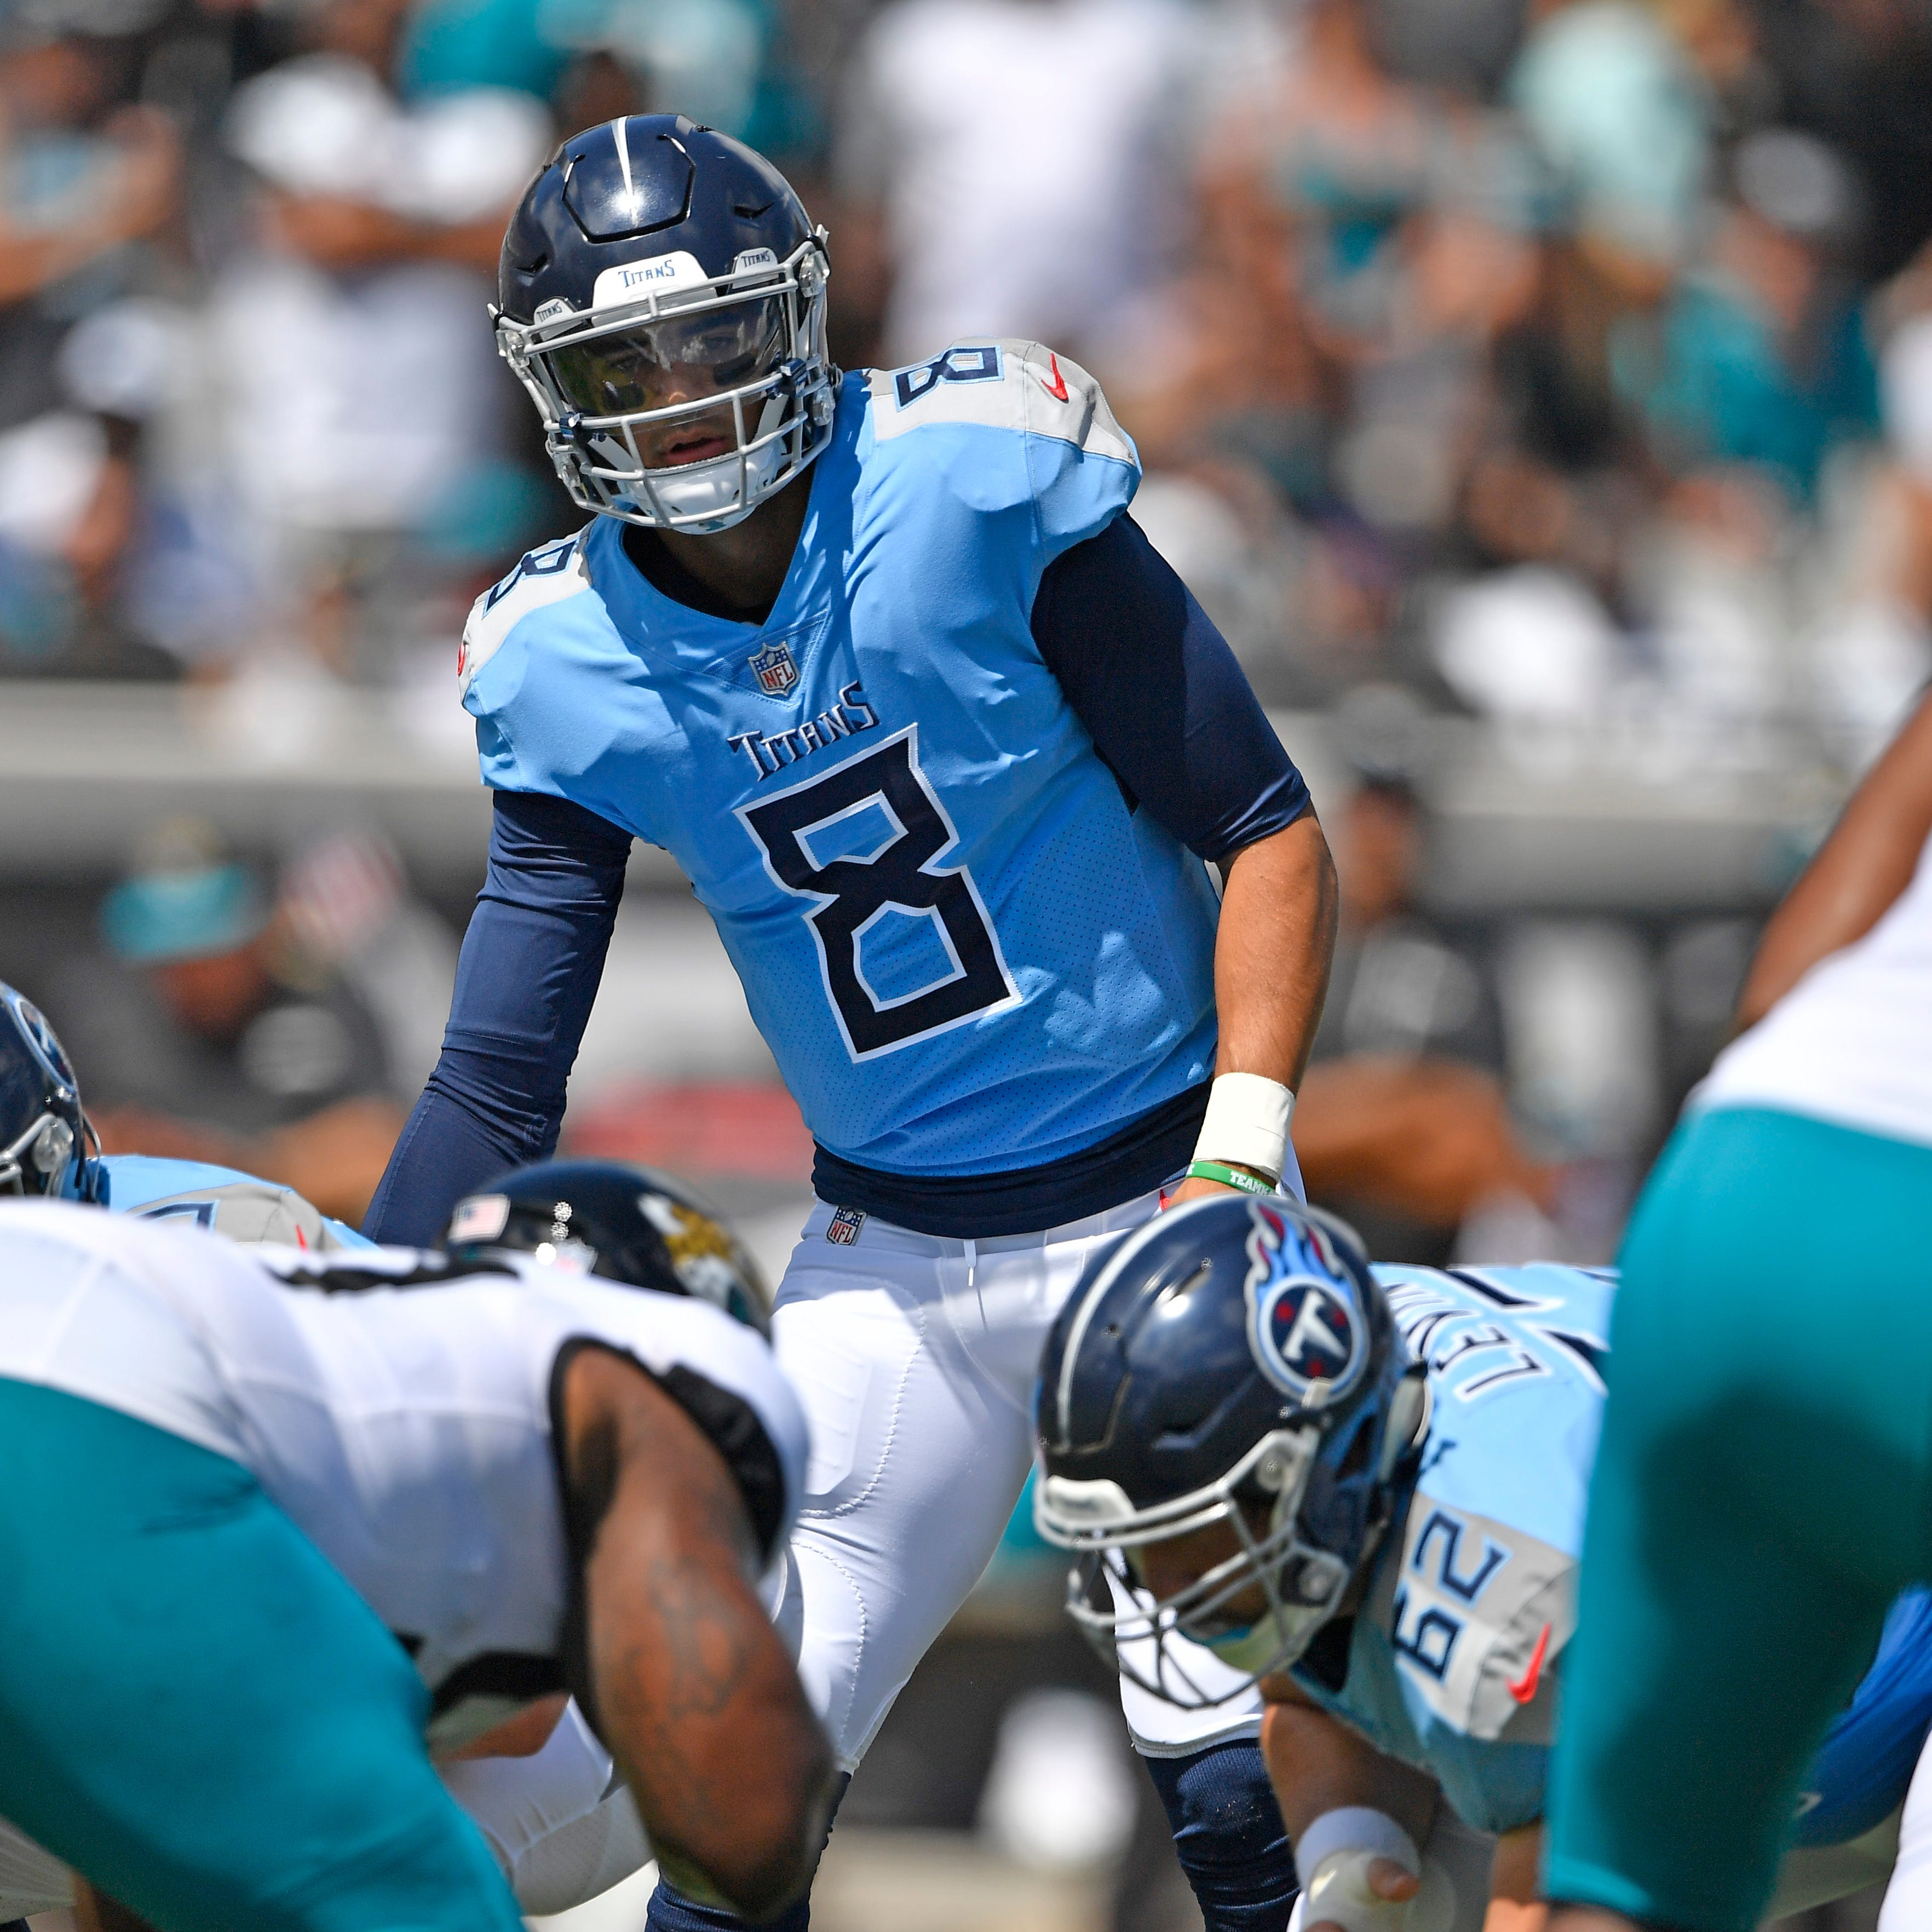 Live blog: Titans continue QB musical chairs in Jacksonville